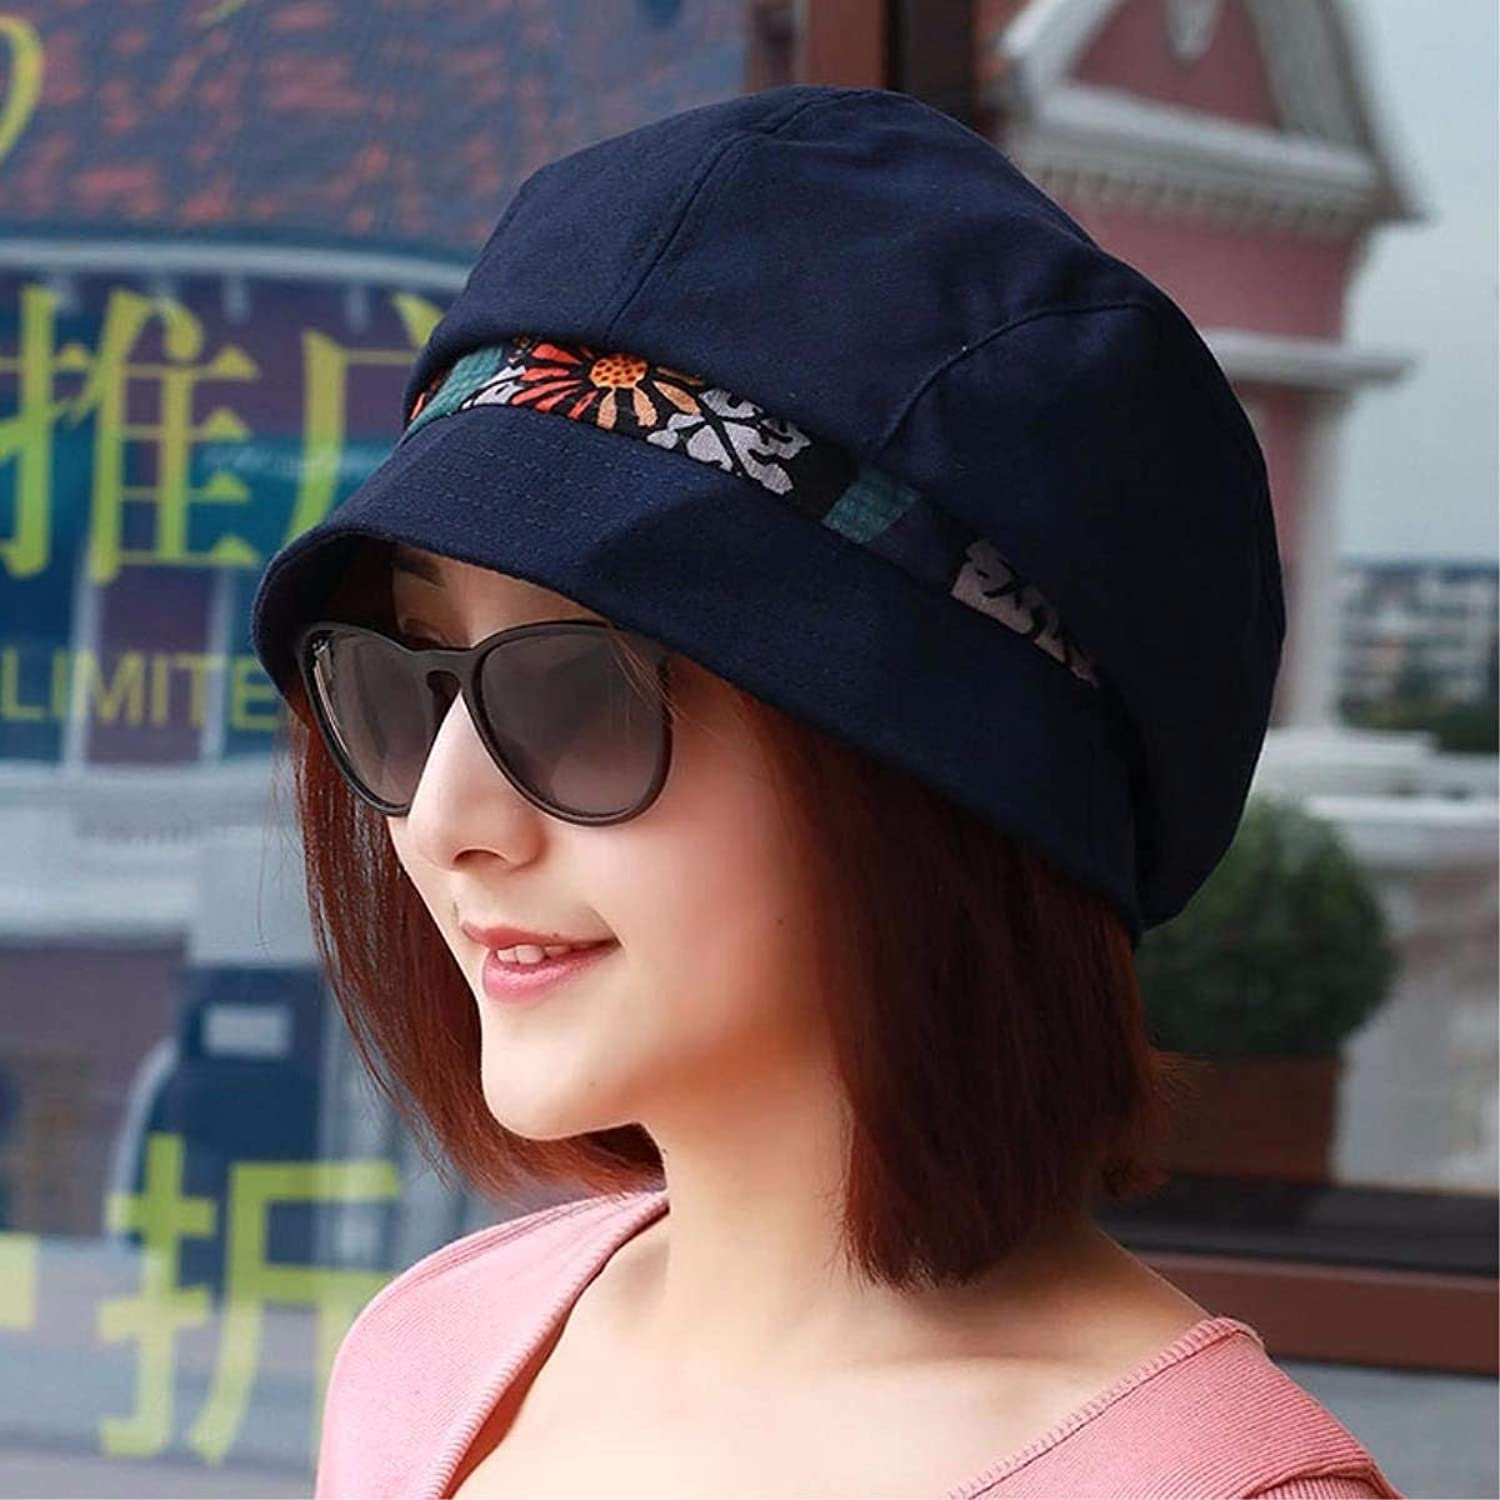 Chuiqingnet The Feeling of spring and summer new national wind cap video thin candy name Yuan basin cap fisherman hat Fashion Cap mother cap Hats (color   The bluee, Size   M)